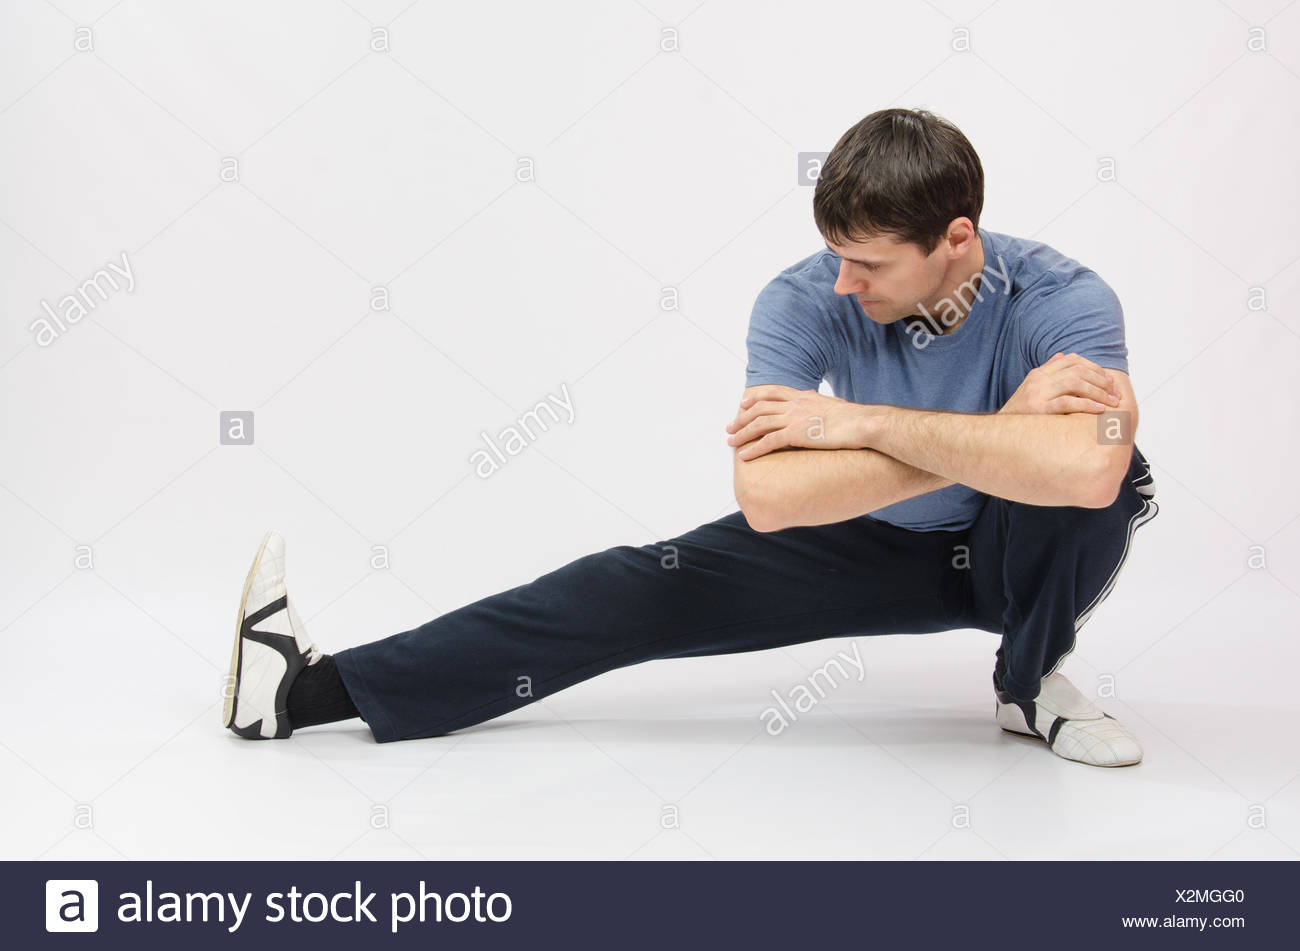 Athlete Crouching Stretches Muscles Of Left Leg Stock Photo